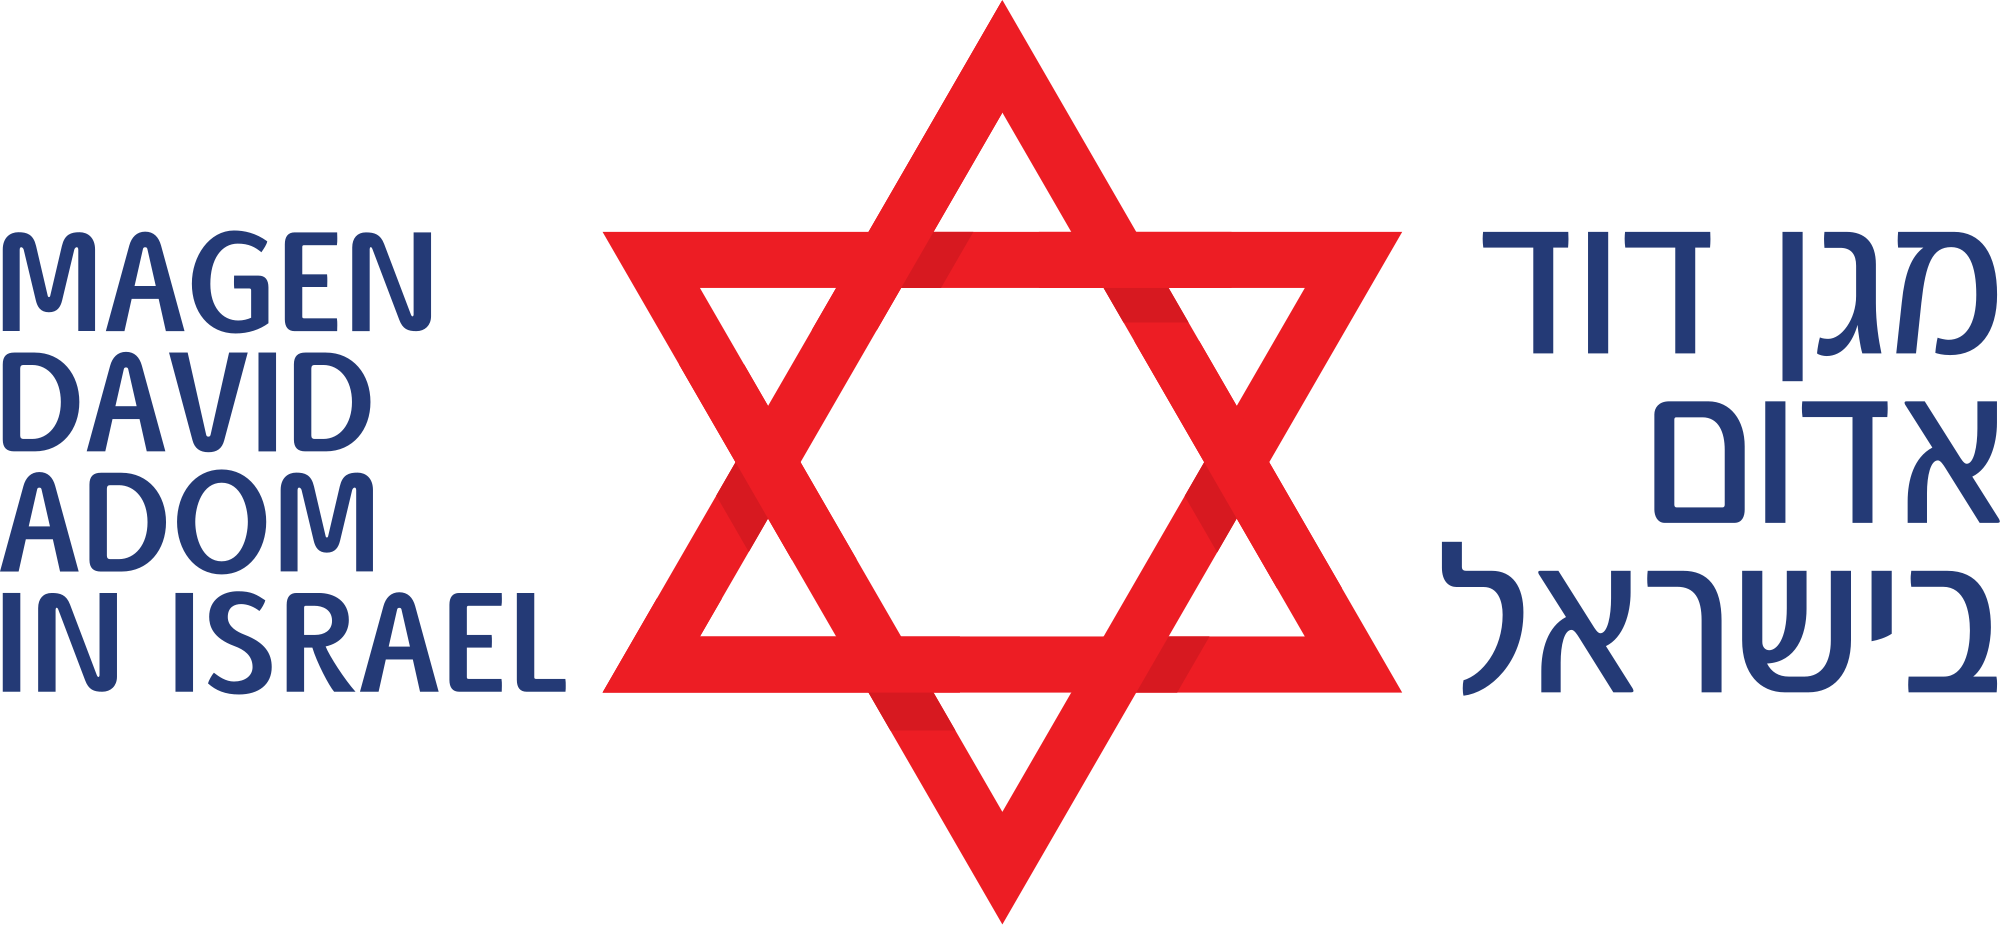 Star of david clipart free clip art royalty free Magen David Adom - Wikipedia clip art royalty free